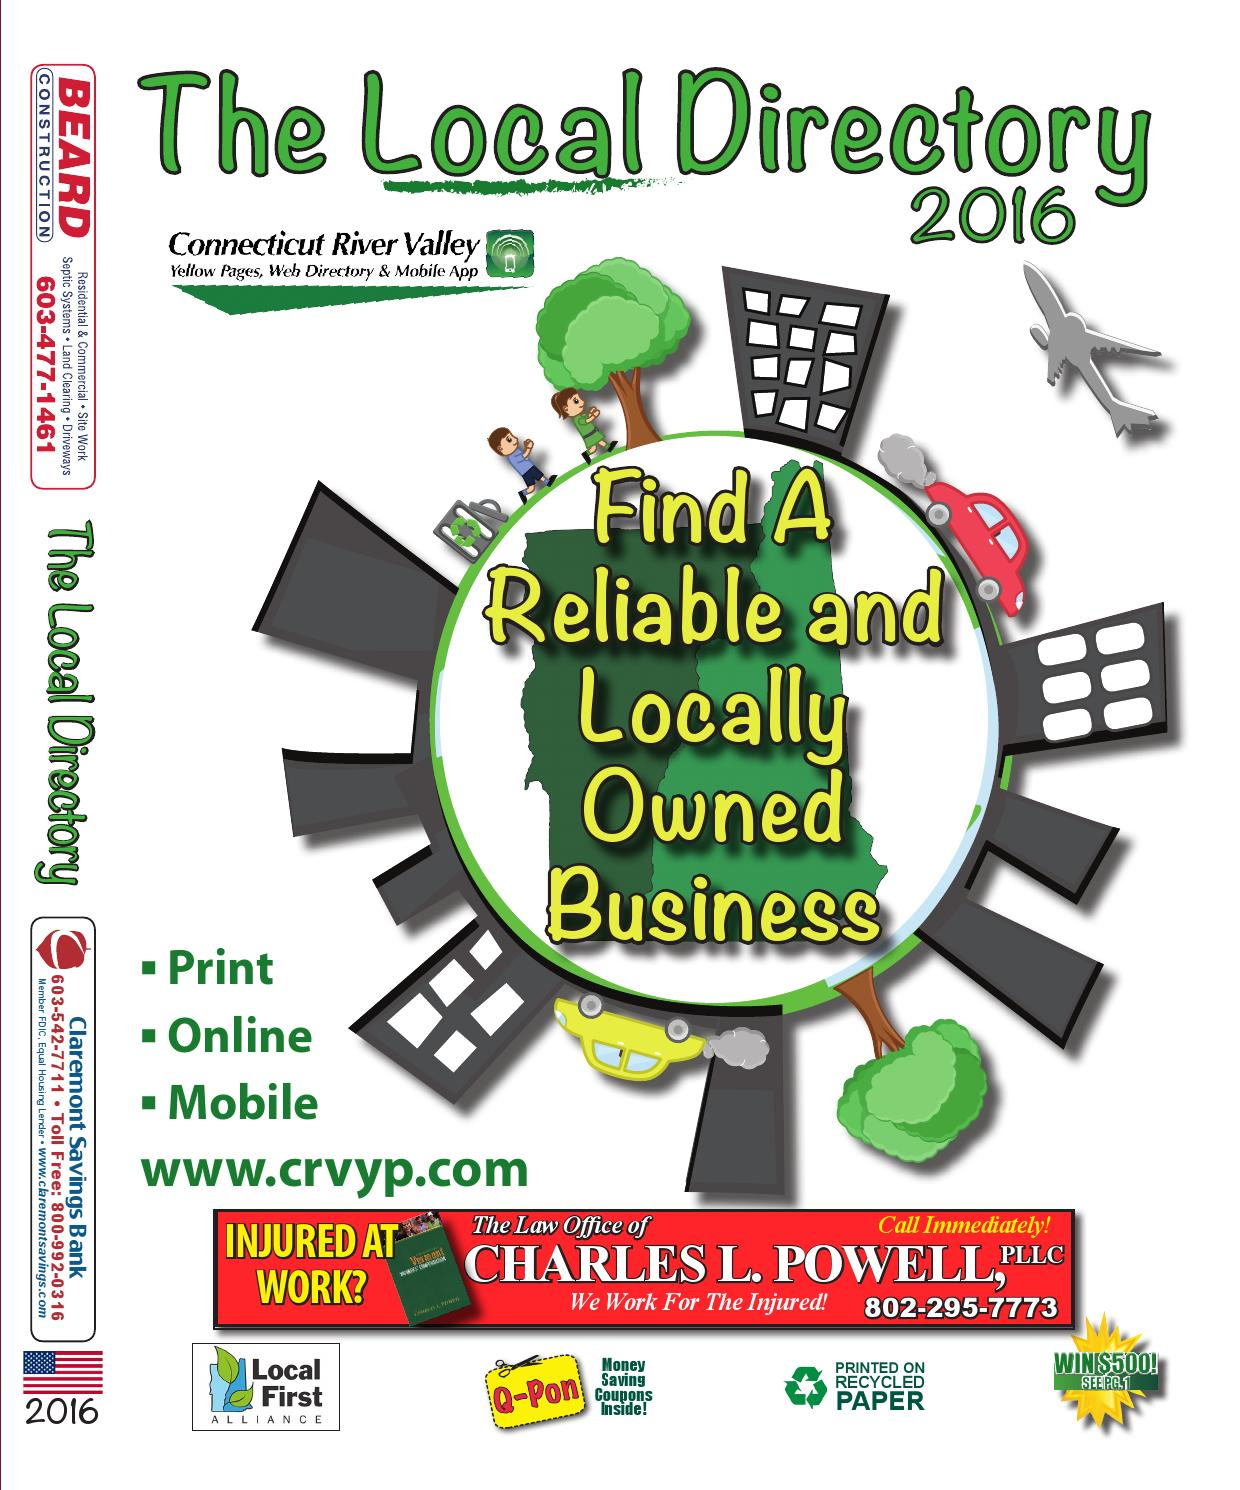 The Local Directory